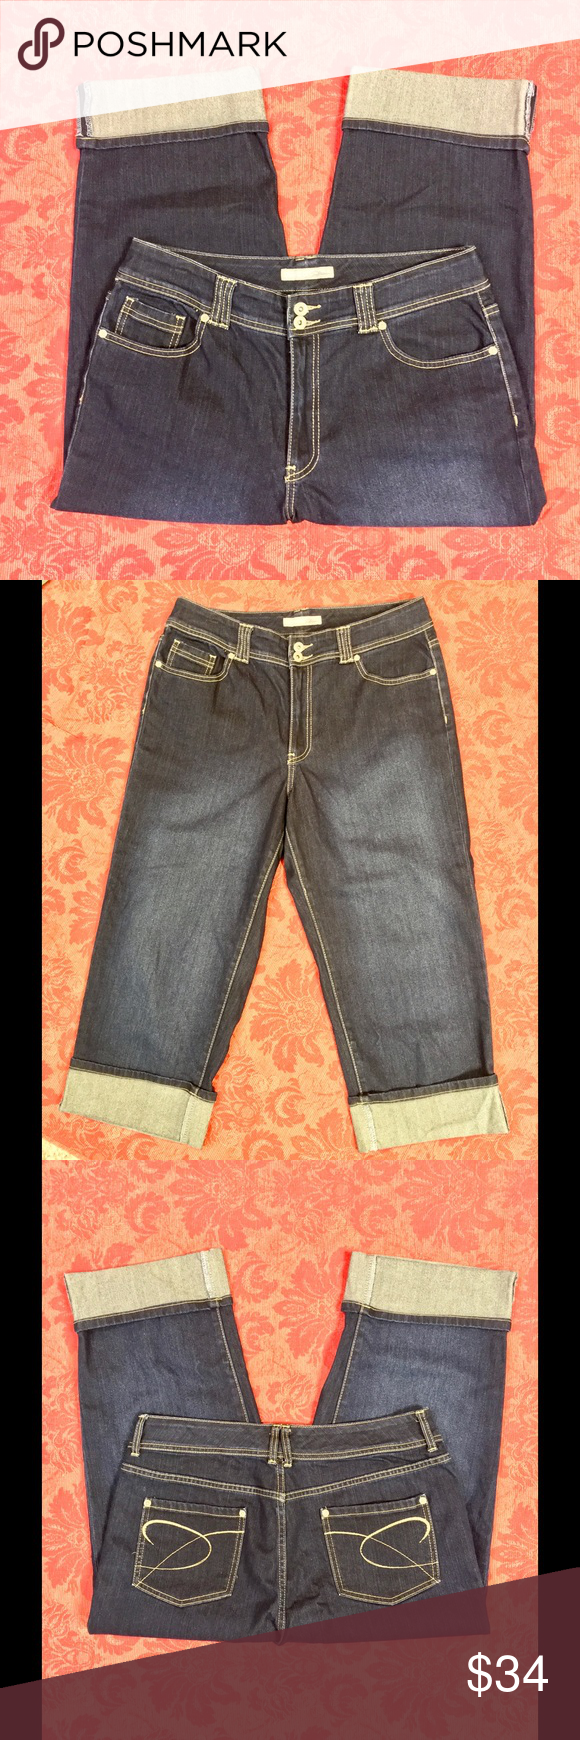 "Chico's Claire Crop Jeans NWOT New without tags condition ""Claire"" cropped jeans from Chico's! Darker wash is super figure flattering. Cuffed. Has 1% spandex. Inseam measures approx 23"". Chico's size 2.5 = U.S. size 14. Chico's Jeans Ankle & Cropped"